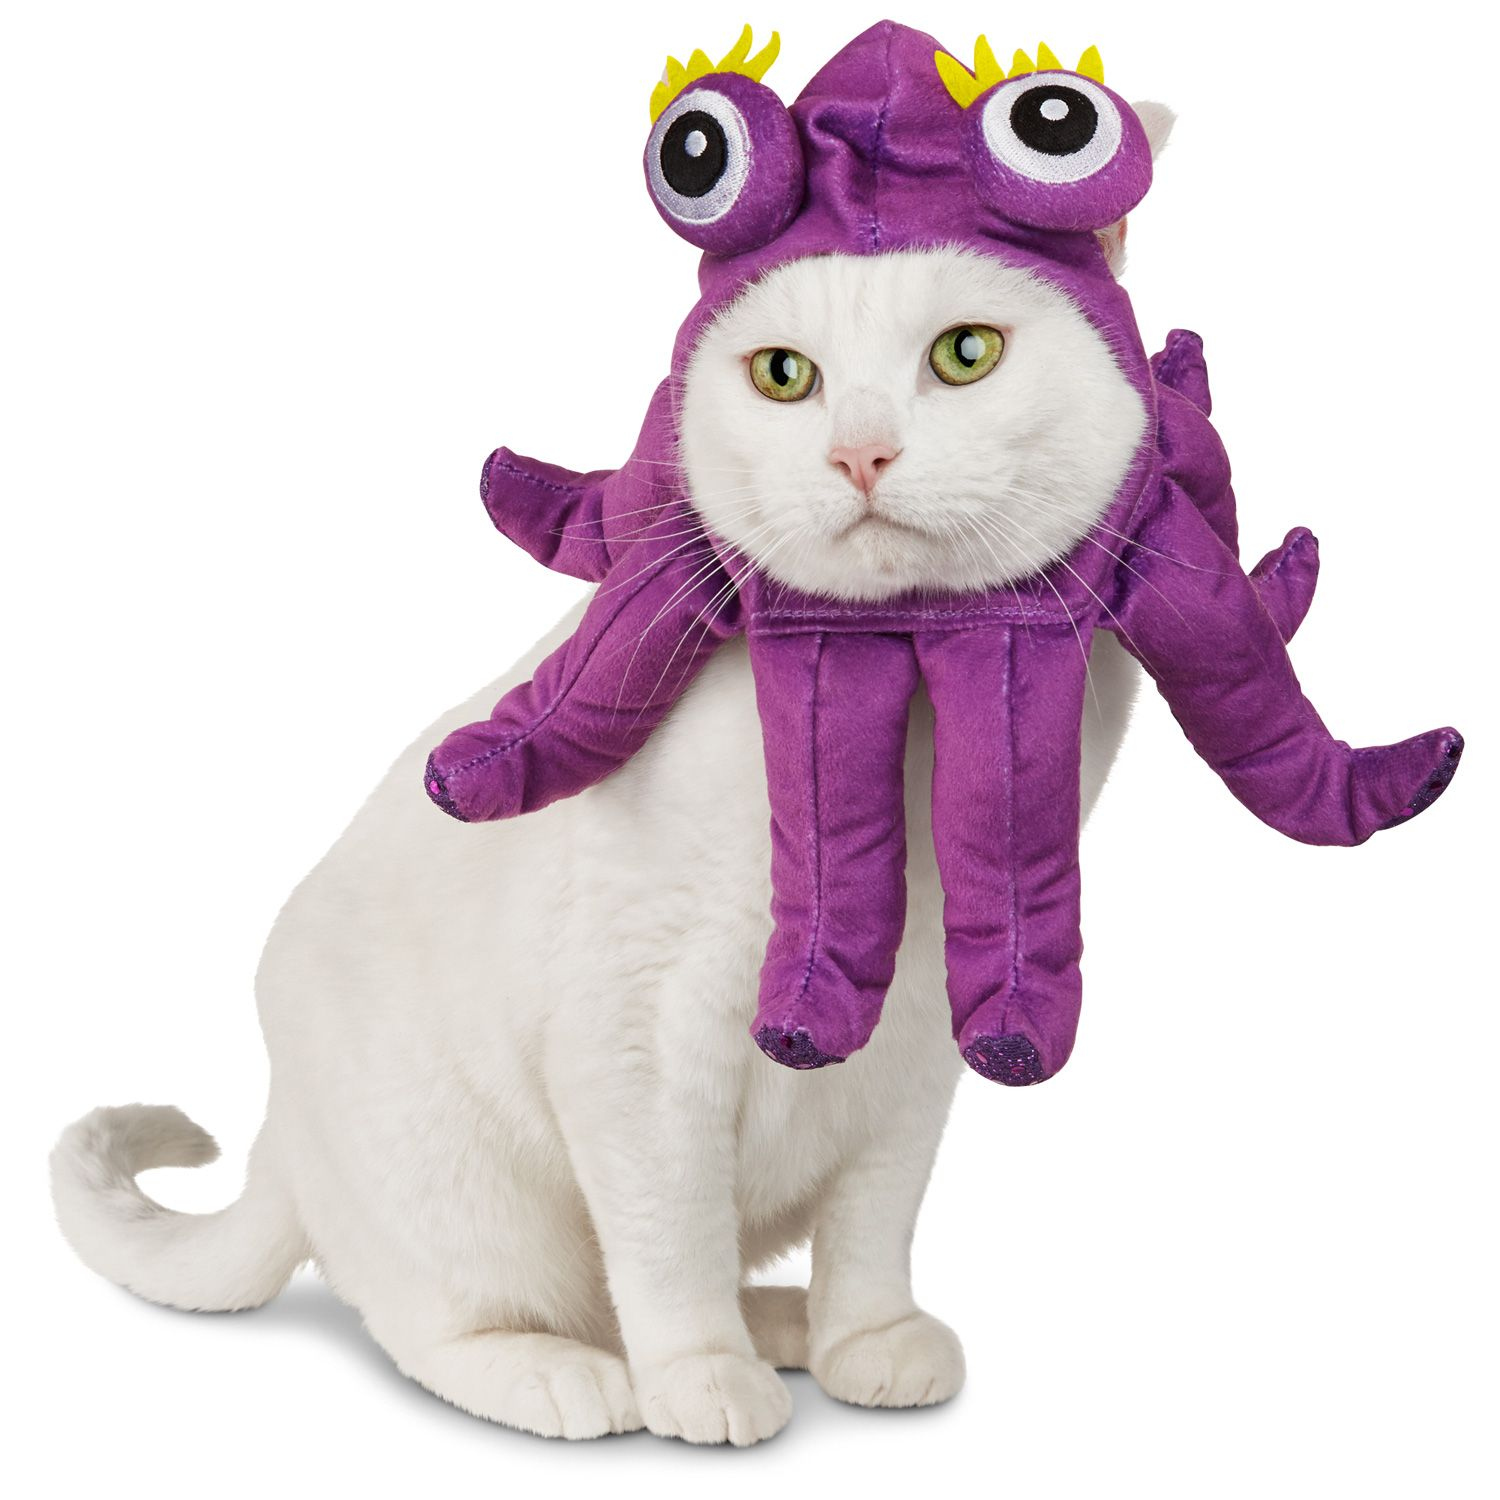 15 pet halloween costumes that are a million times cuter than yours - Halloween Costumes For Kittens Pets